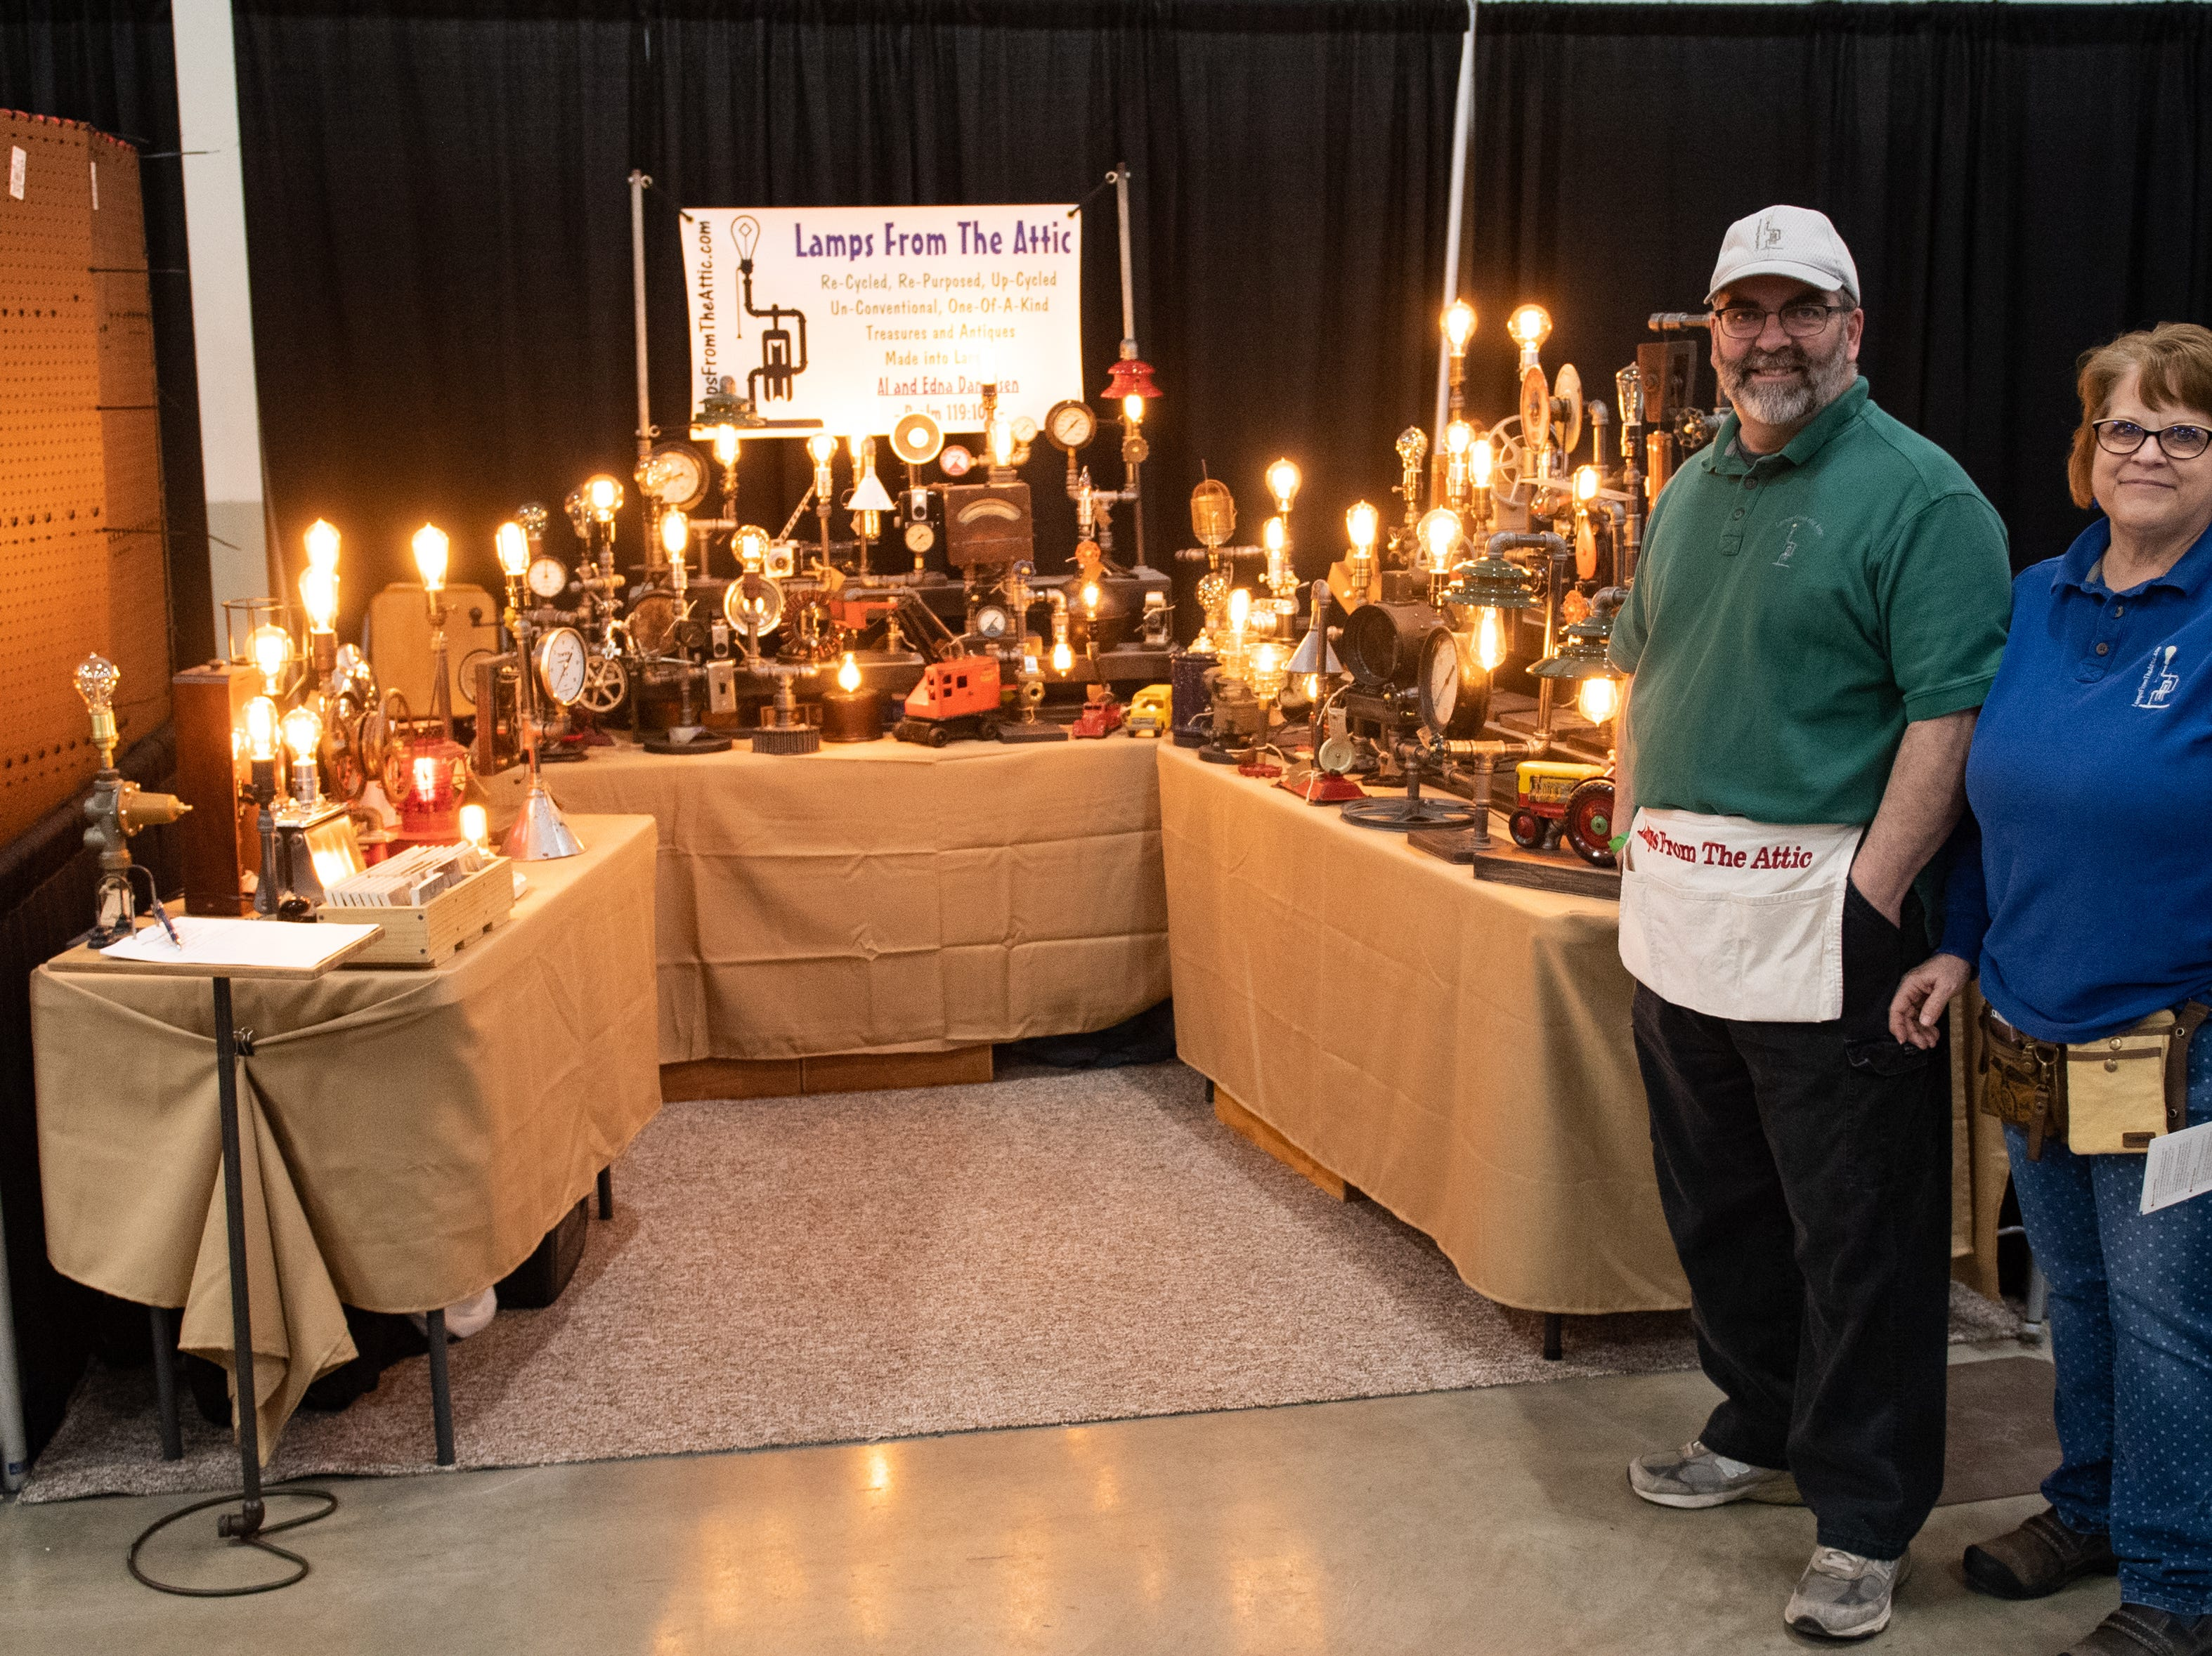 Lamps From The Attic has a booth at the 2019 Home & Garden Show, February 8, 2019.